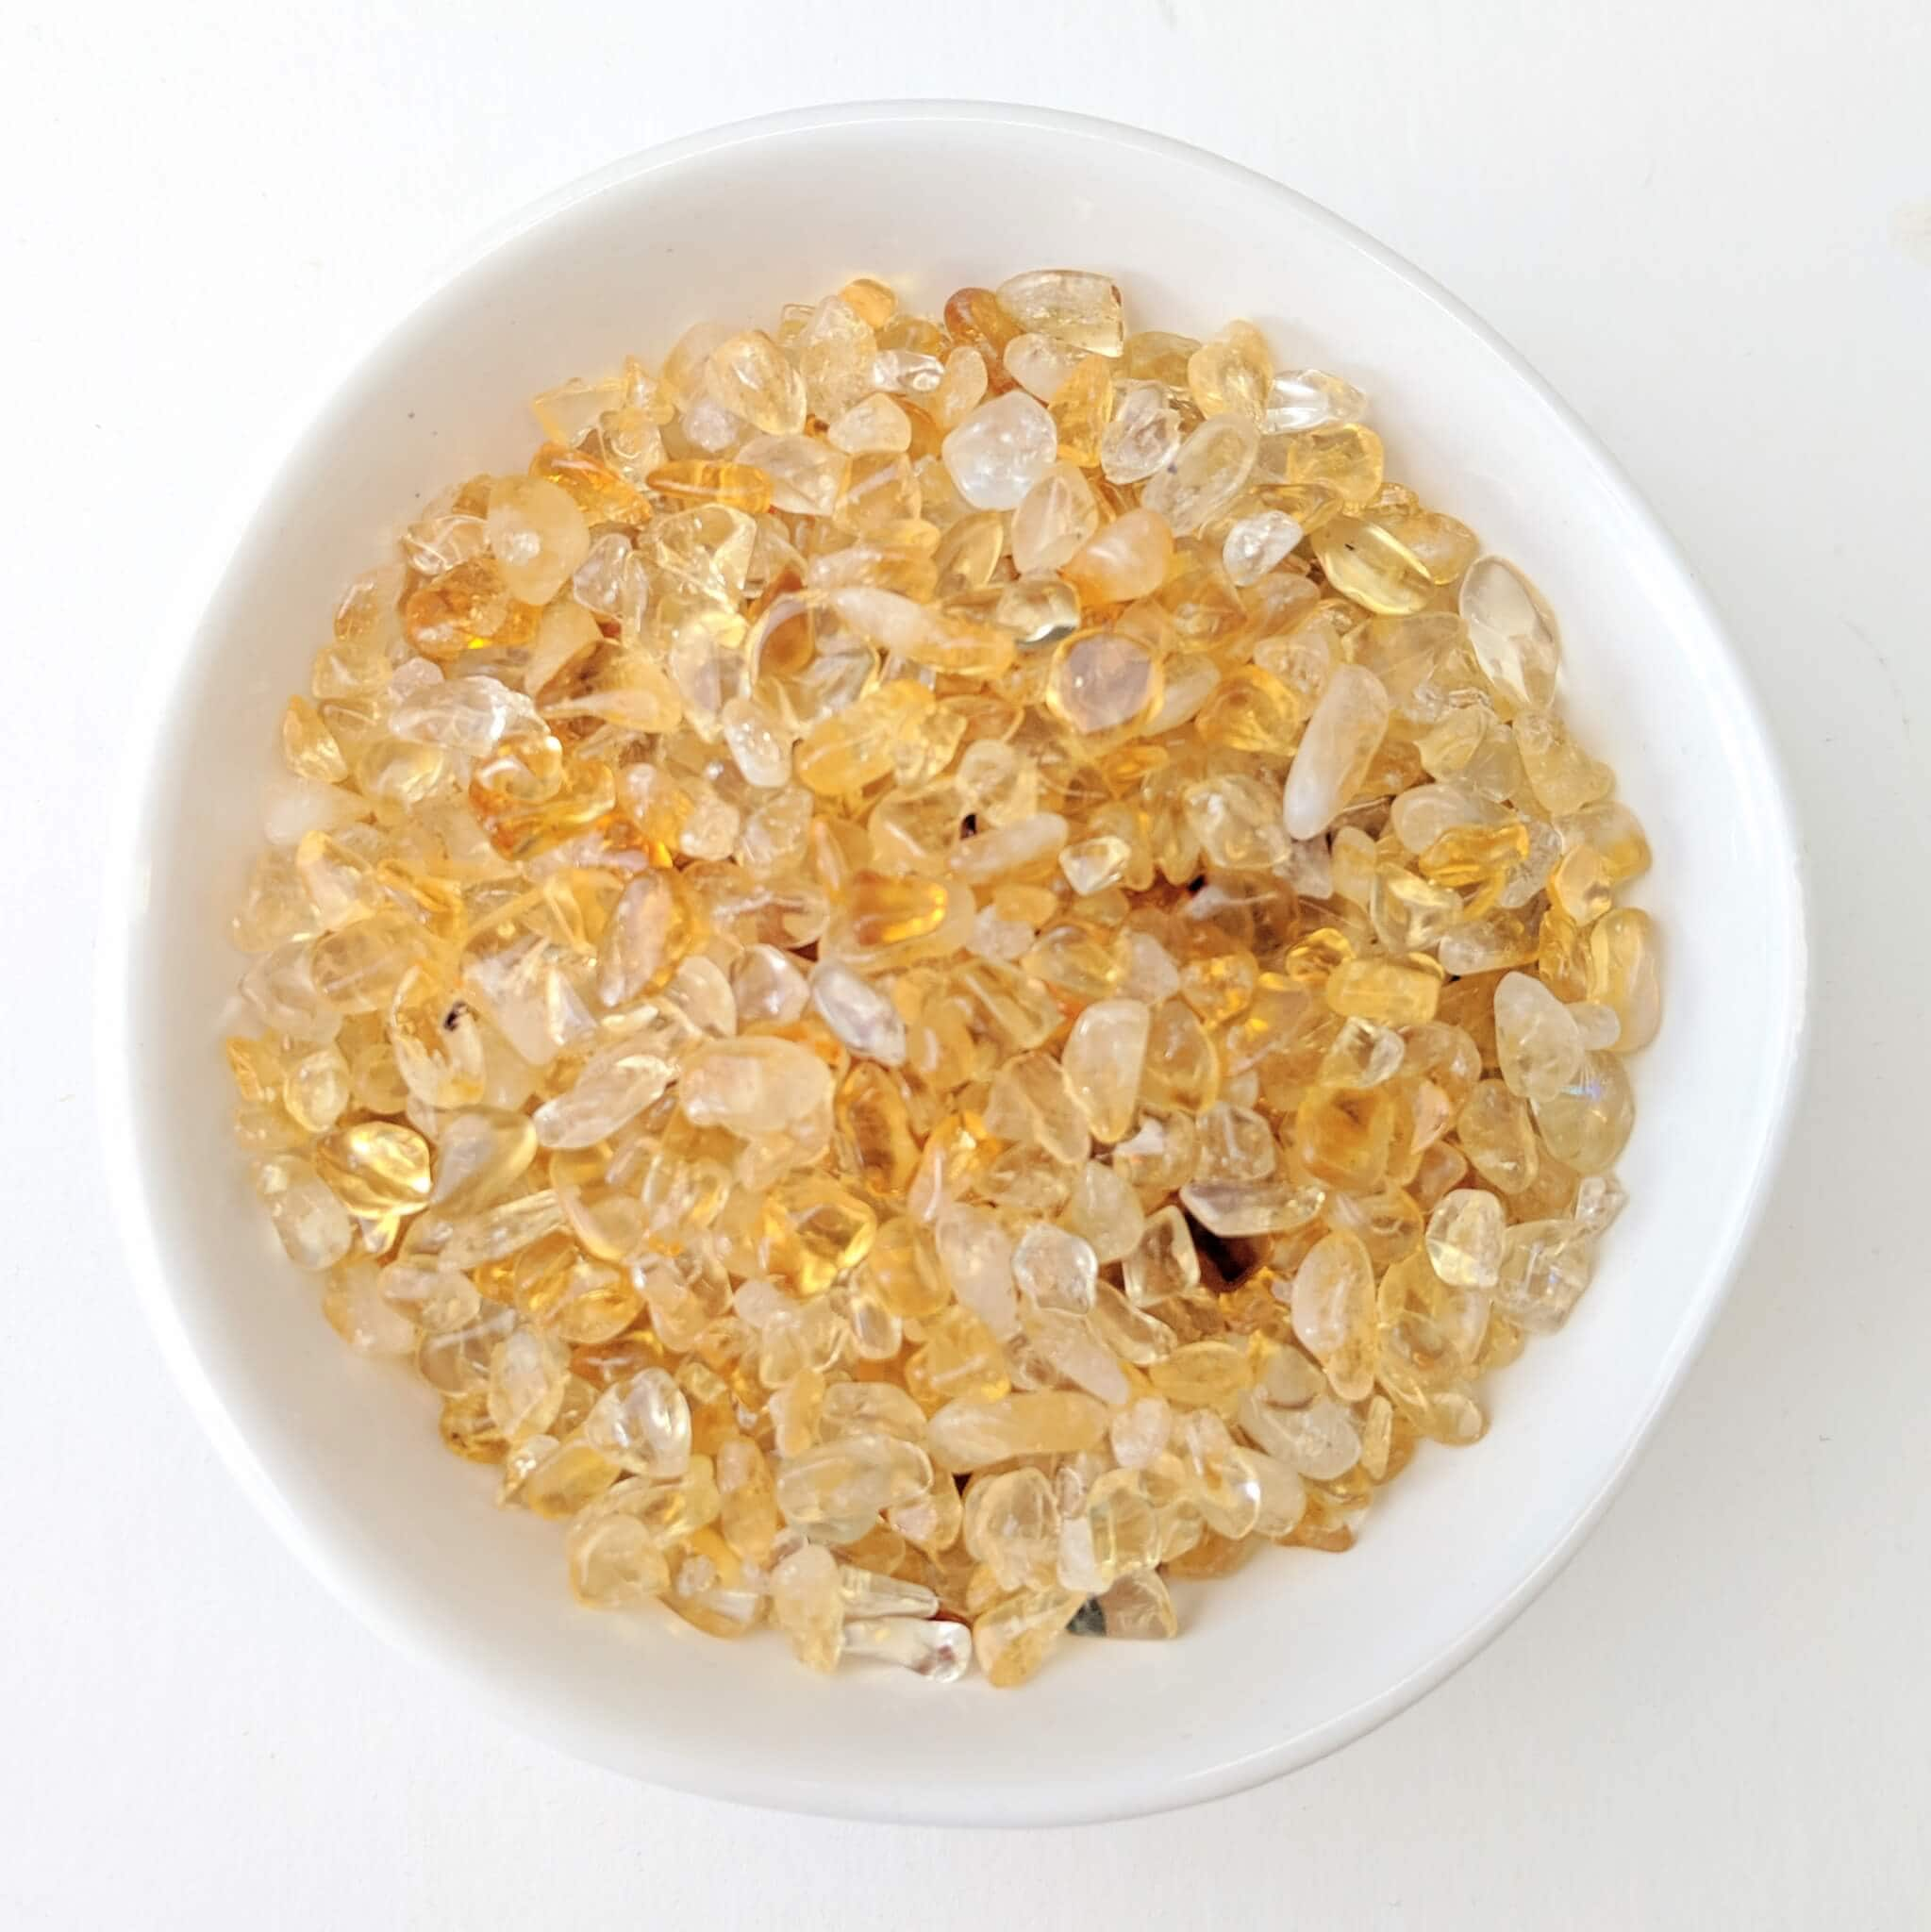 Citrine Crystal Chips in a White Bowl Top View